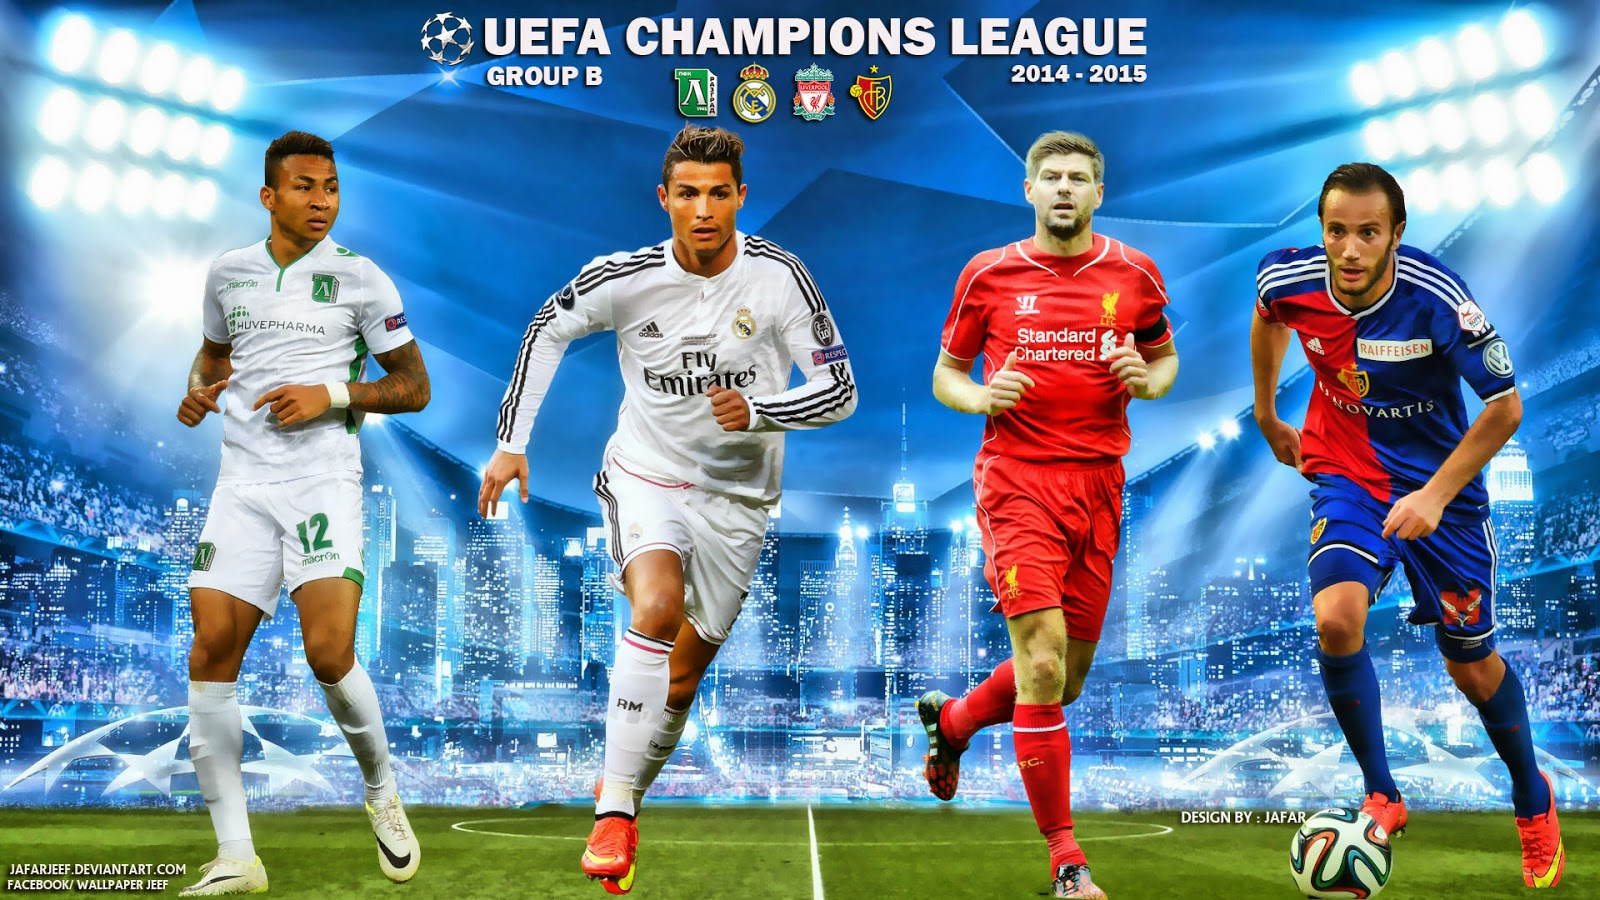 champions league match dates 2014 15